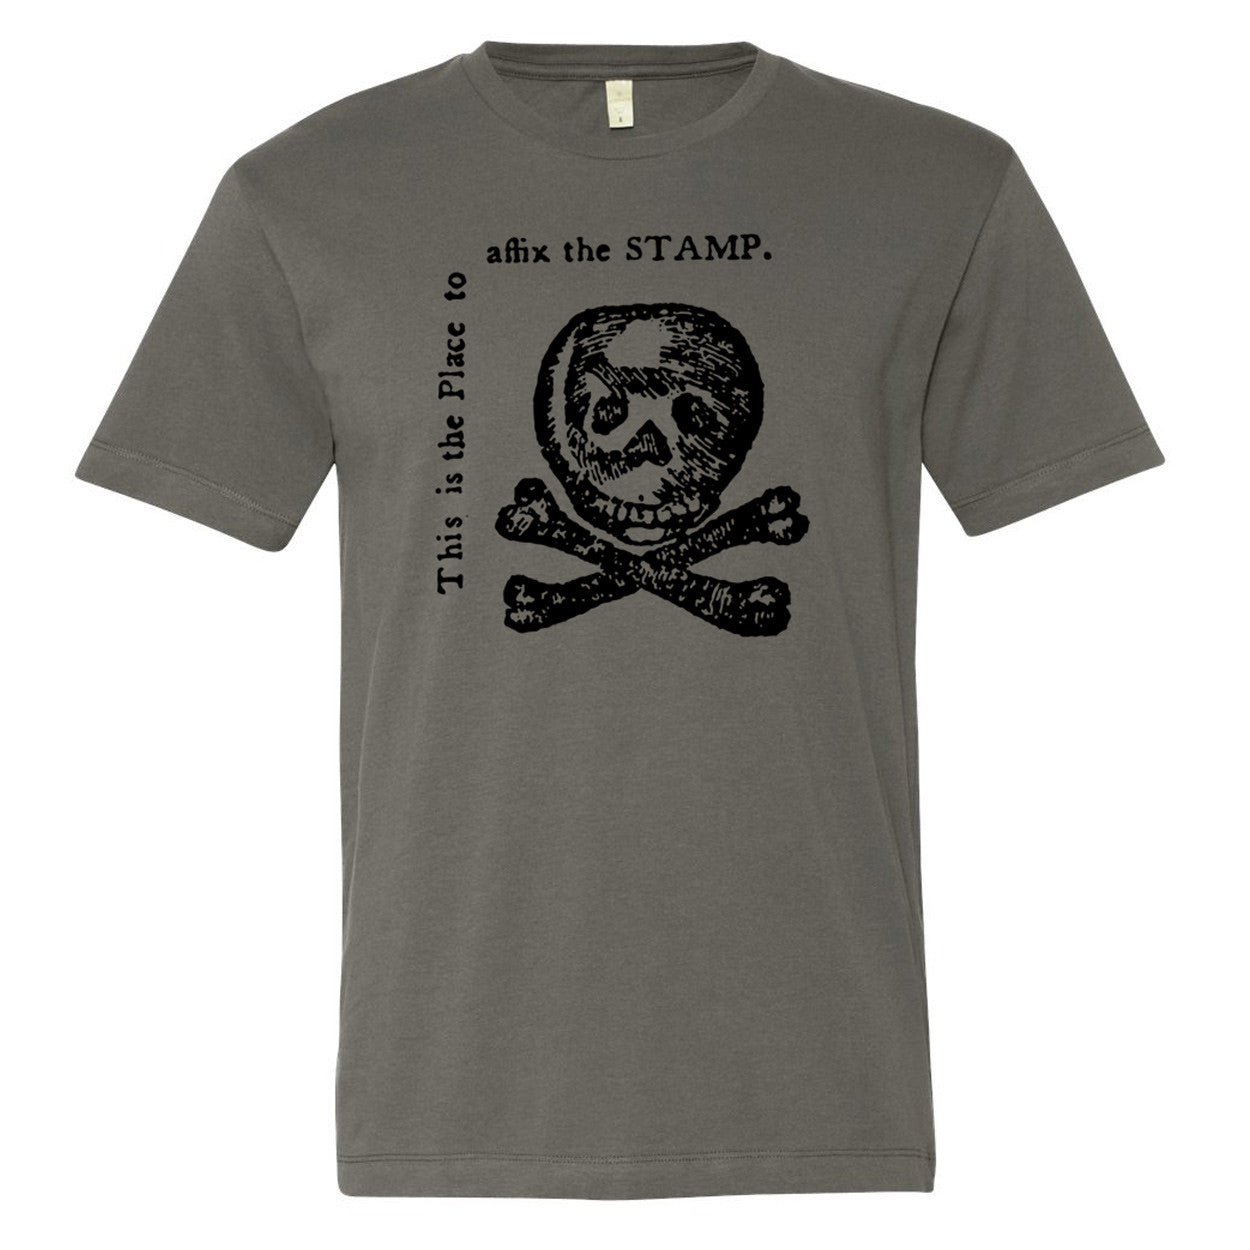 Stamp Act Satire Vintage Graphic T Shirt Liberty Maniacs